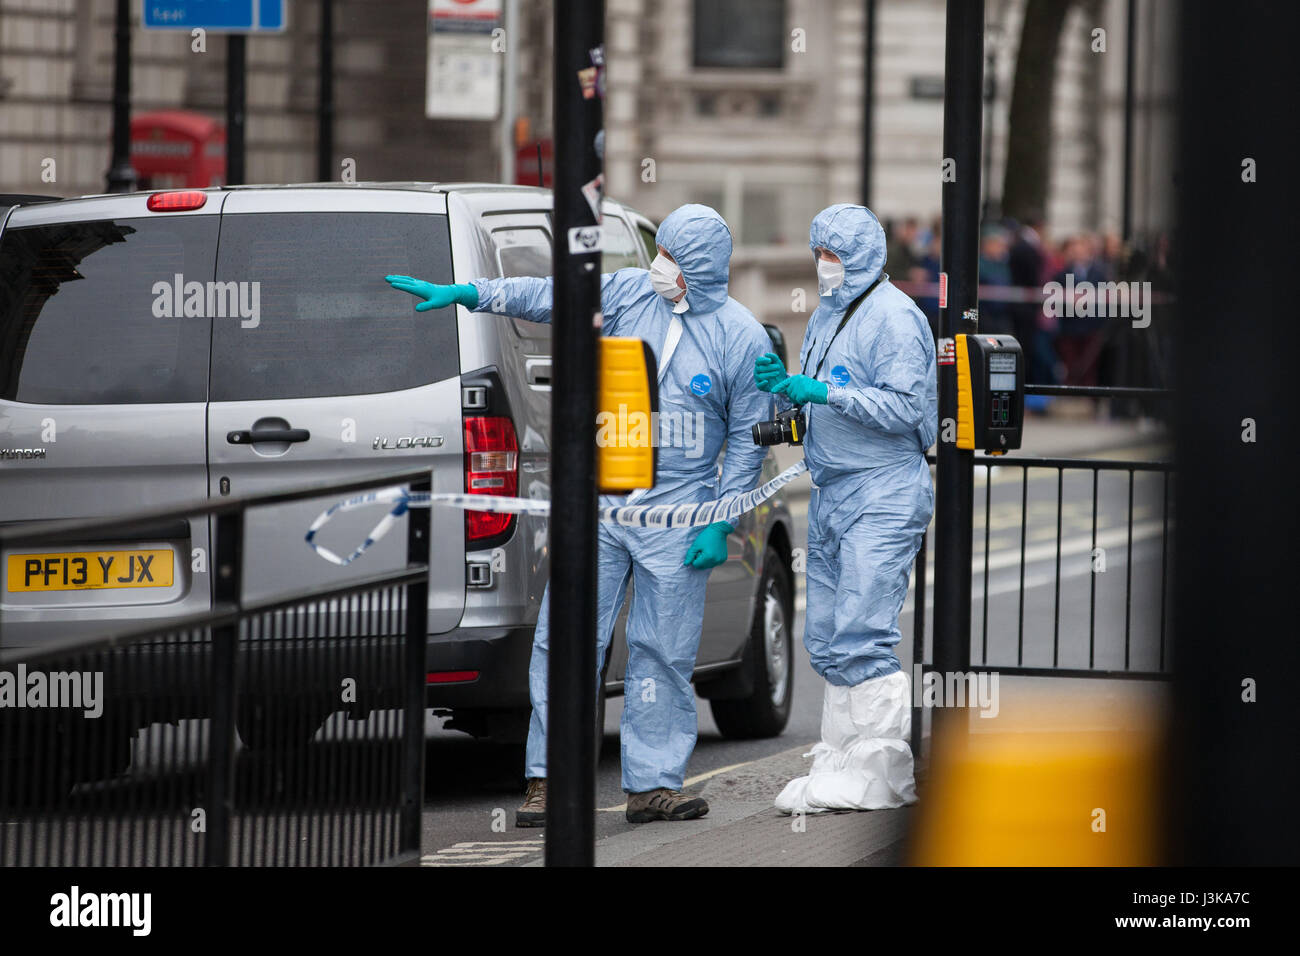 London, UK. 27th April, 2017. Police forensic officers carry out investigations within a cordon after a man was - Stock Image